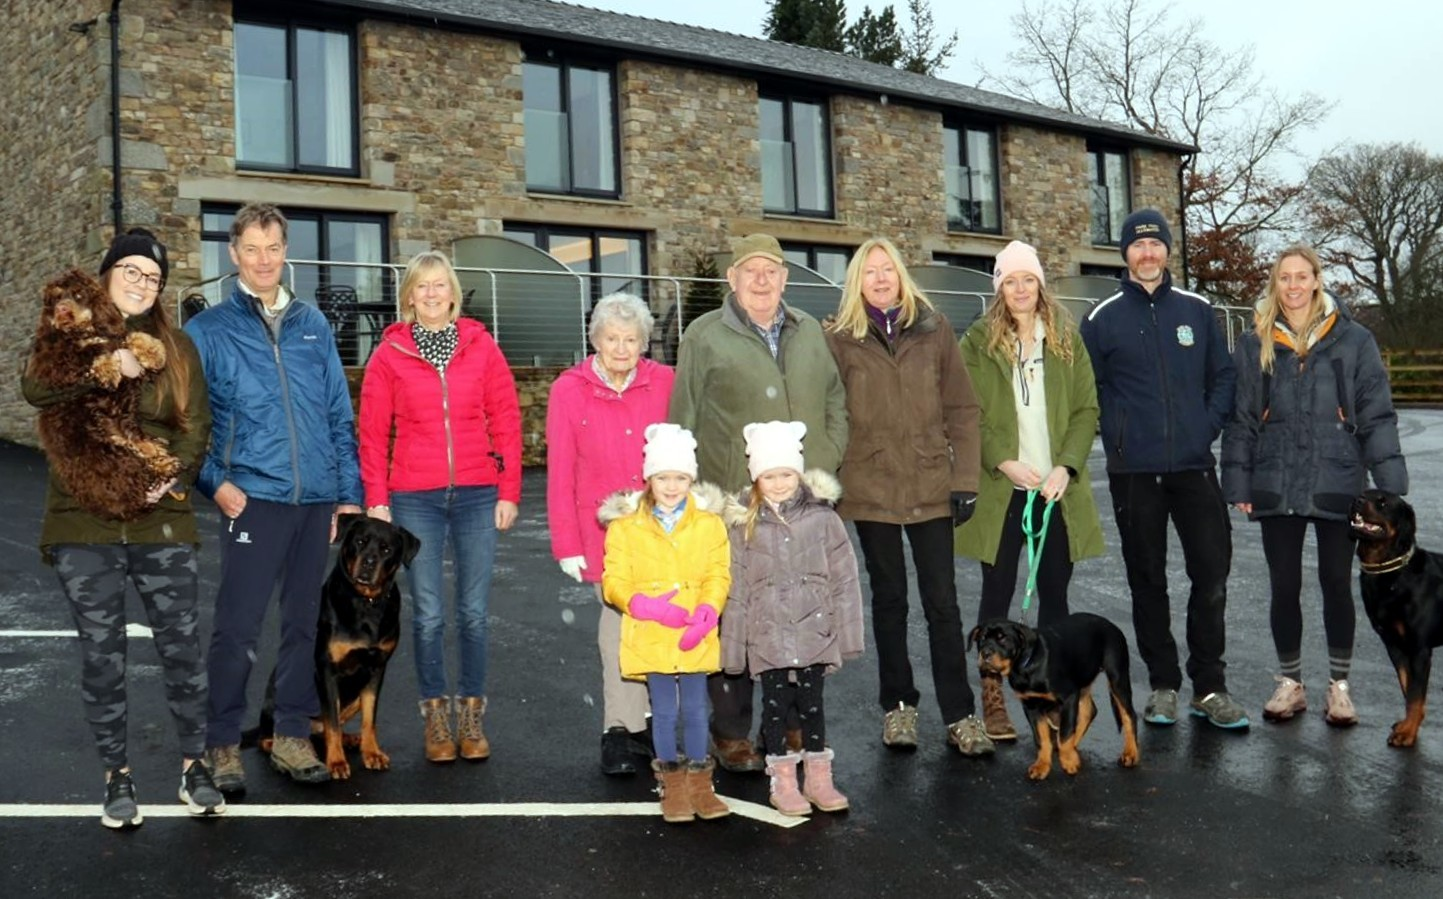 70 cracking years for Pooley Bridge caravan park – and the success continues!